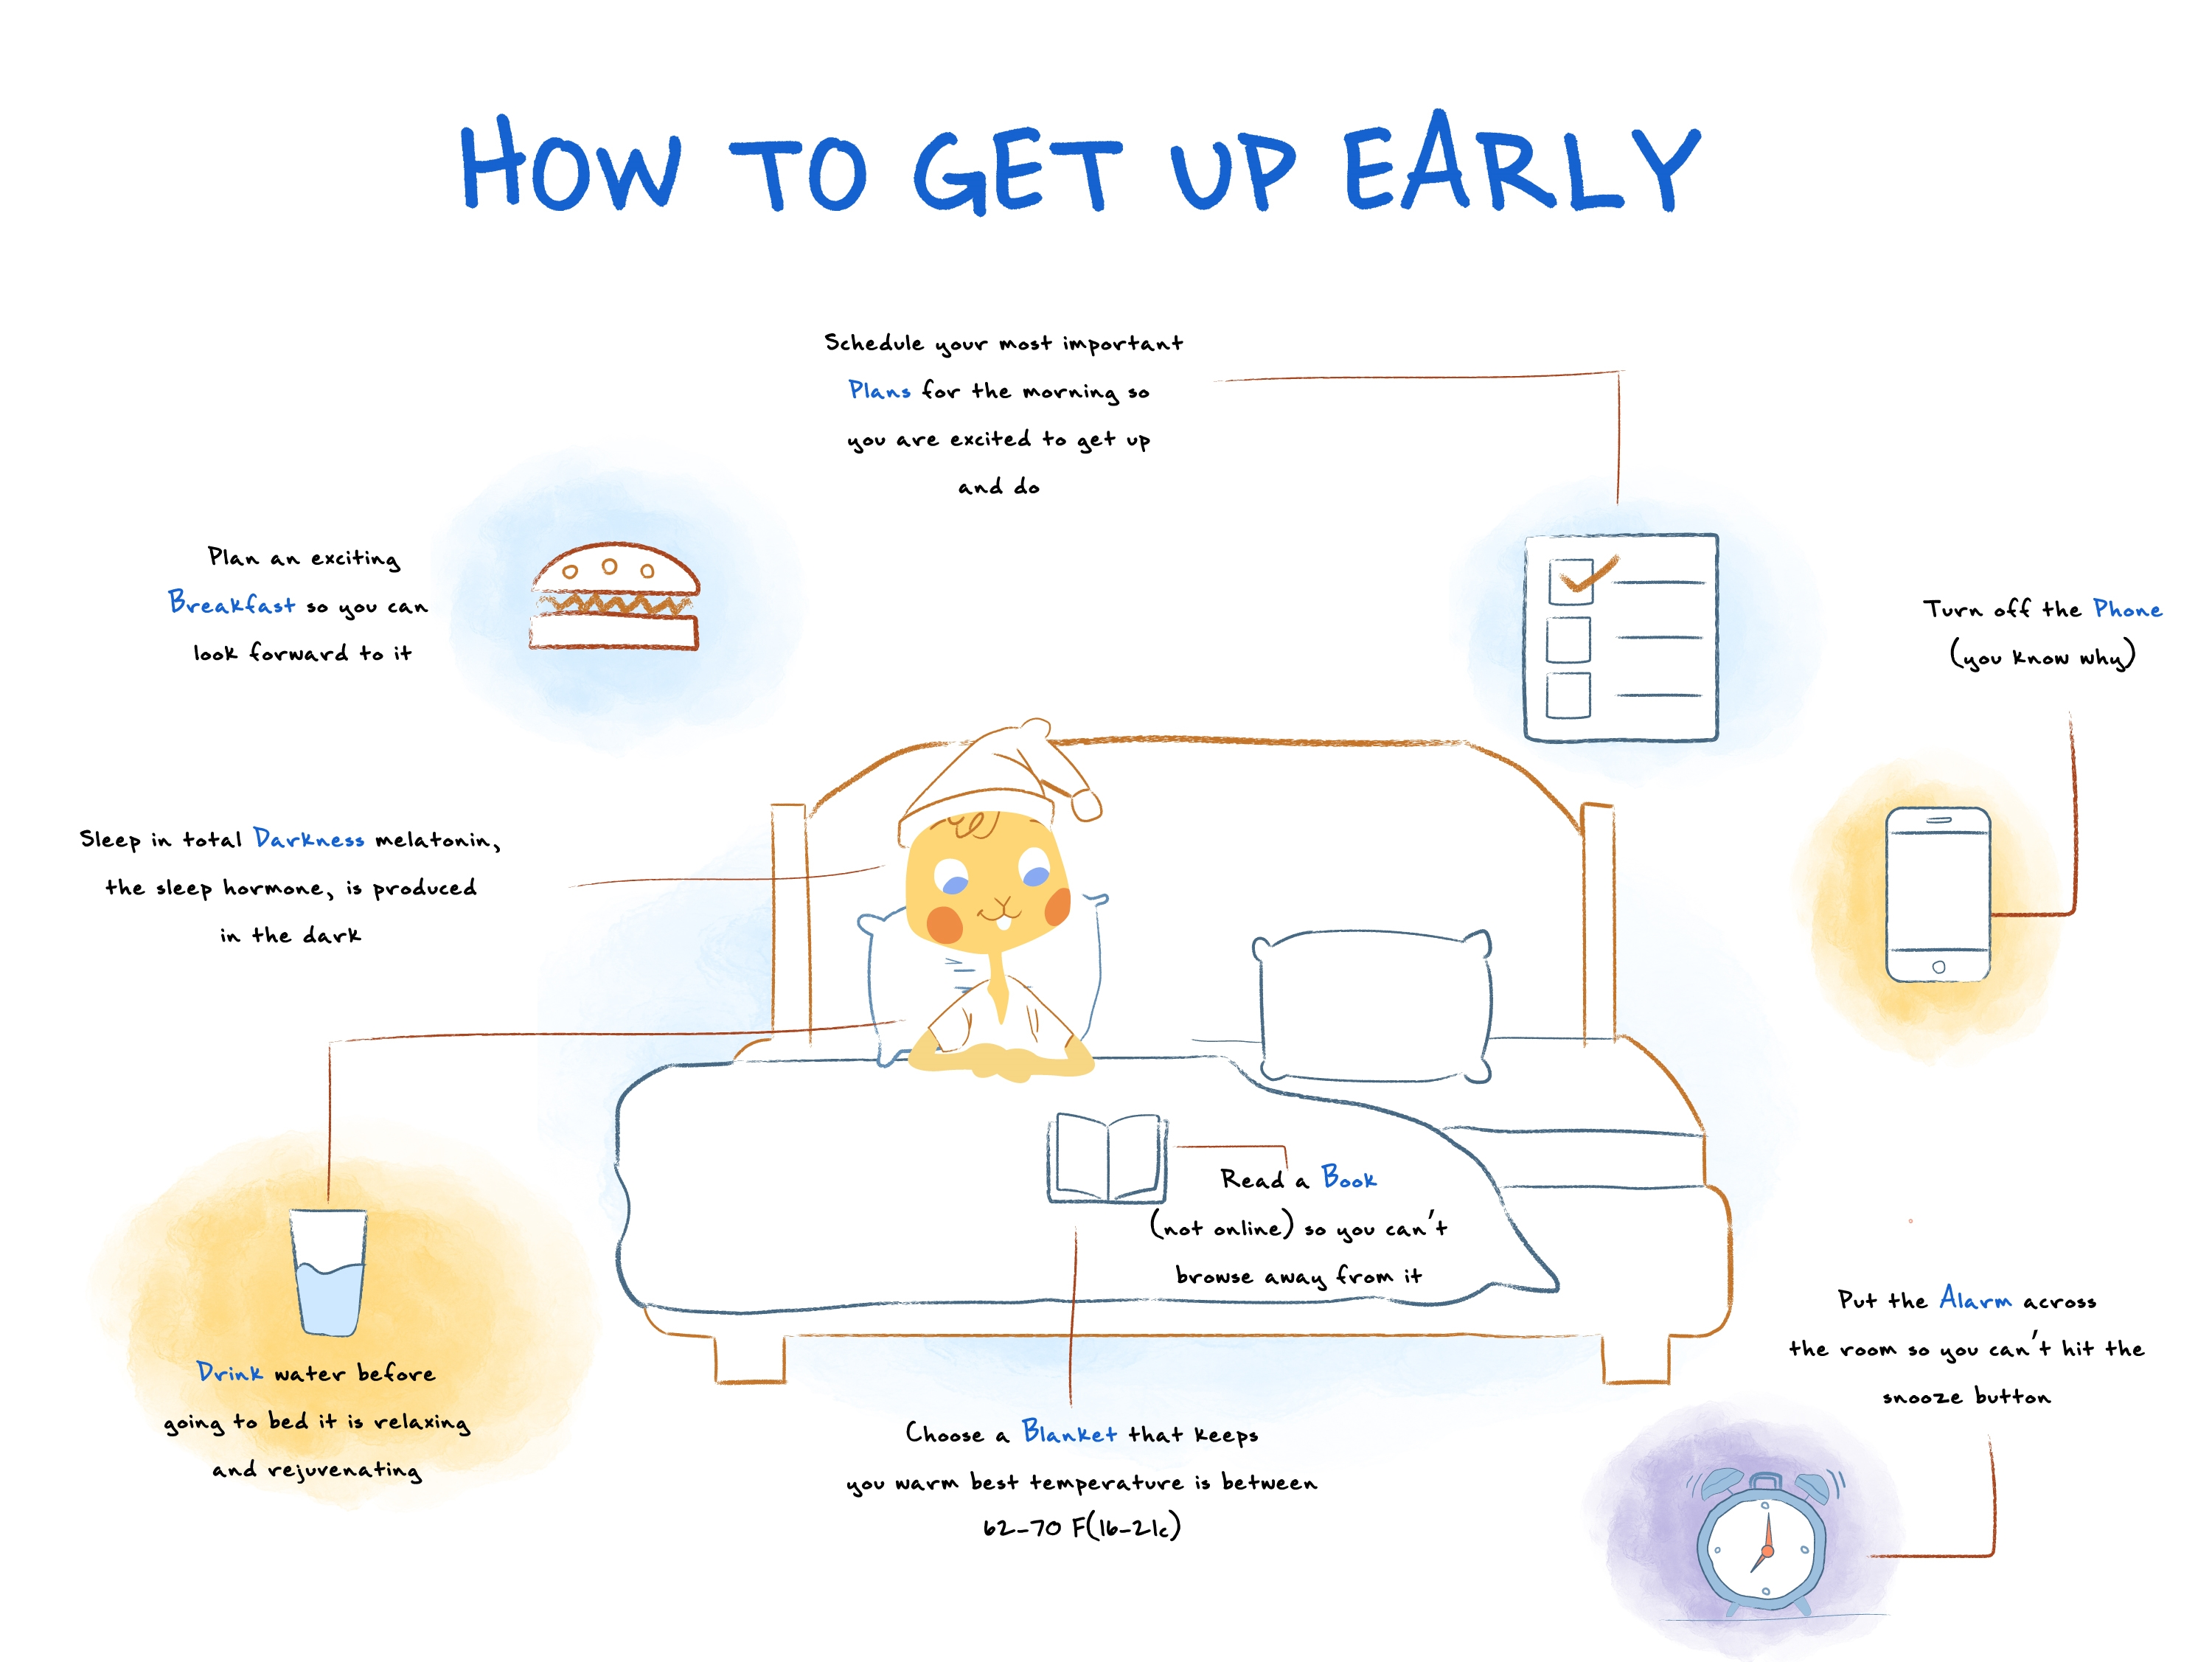 How to Get Up Early By Preparing the Night Before